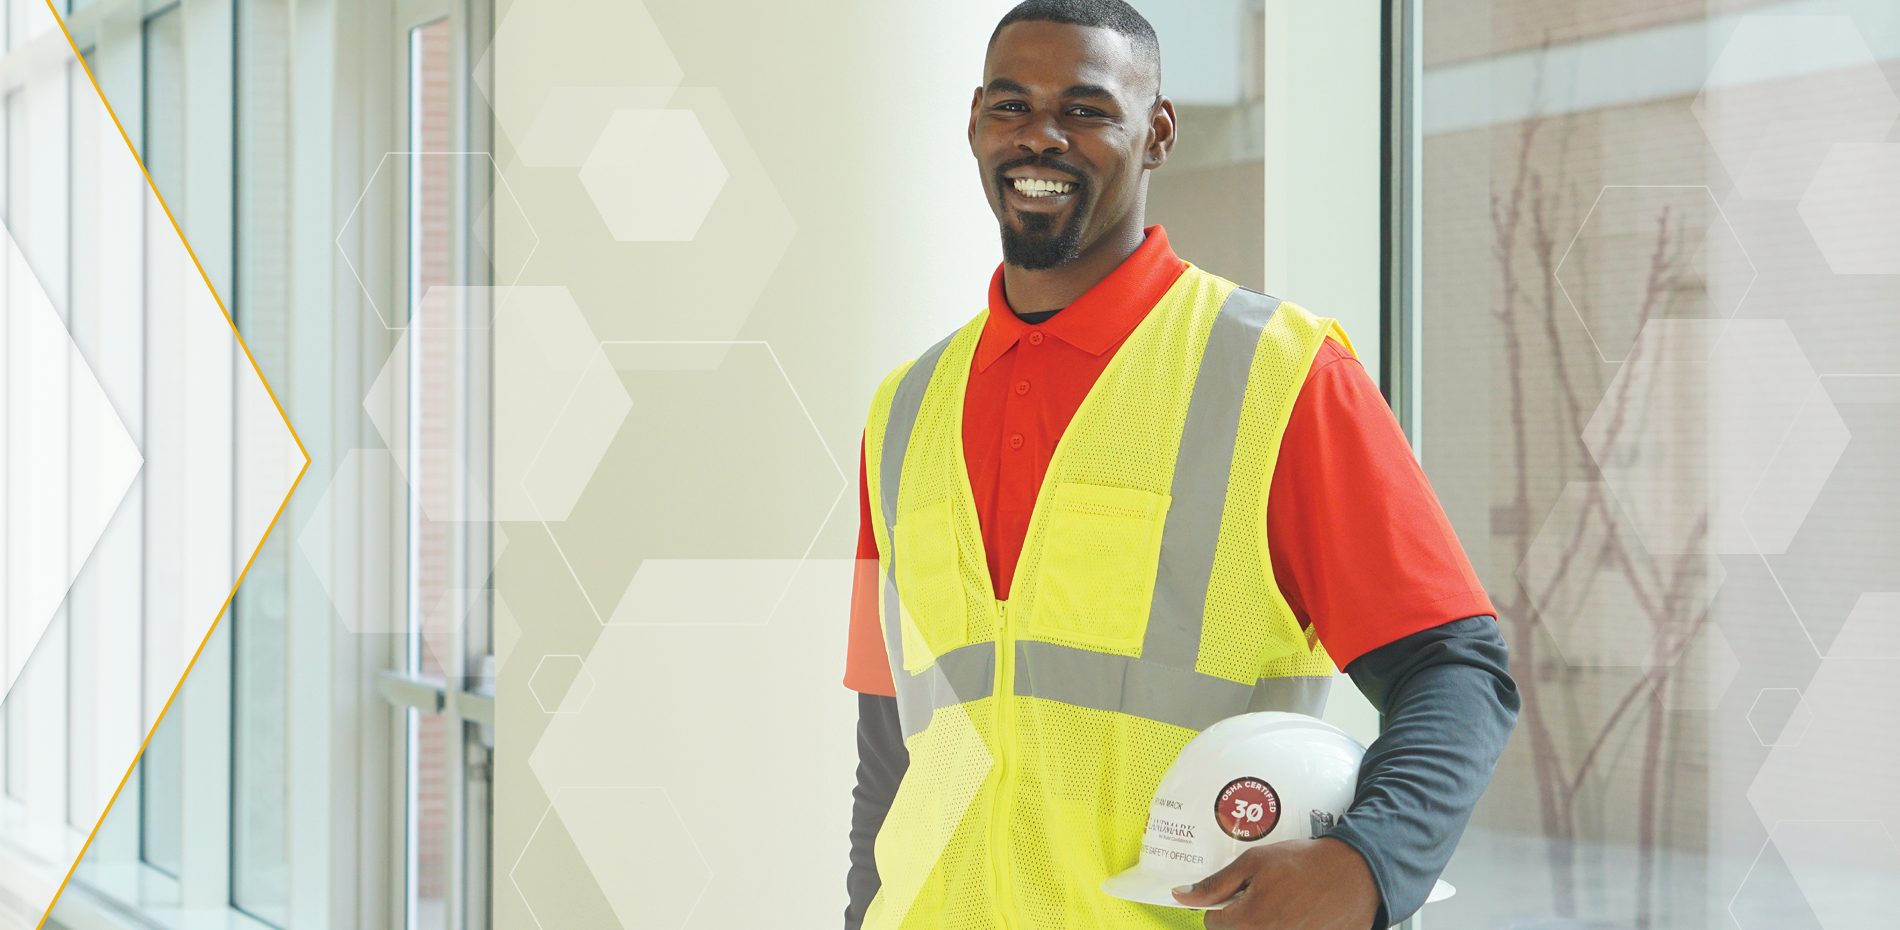 Ryan Mack, site safety manager